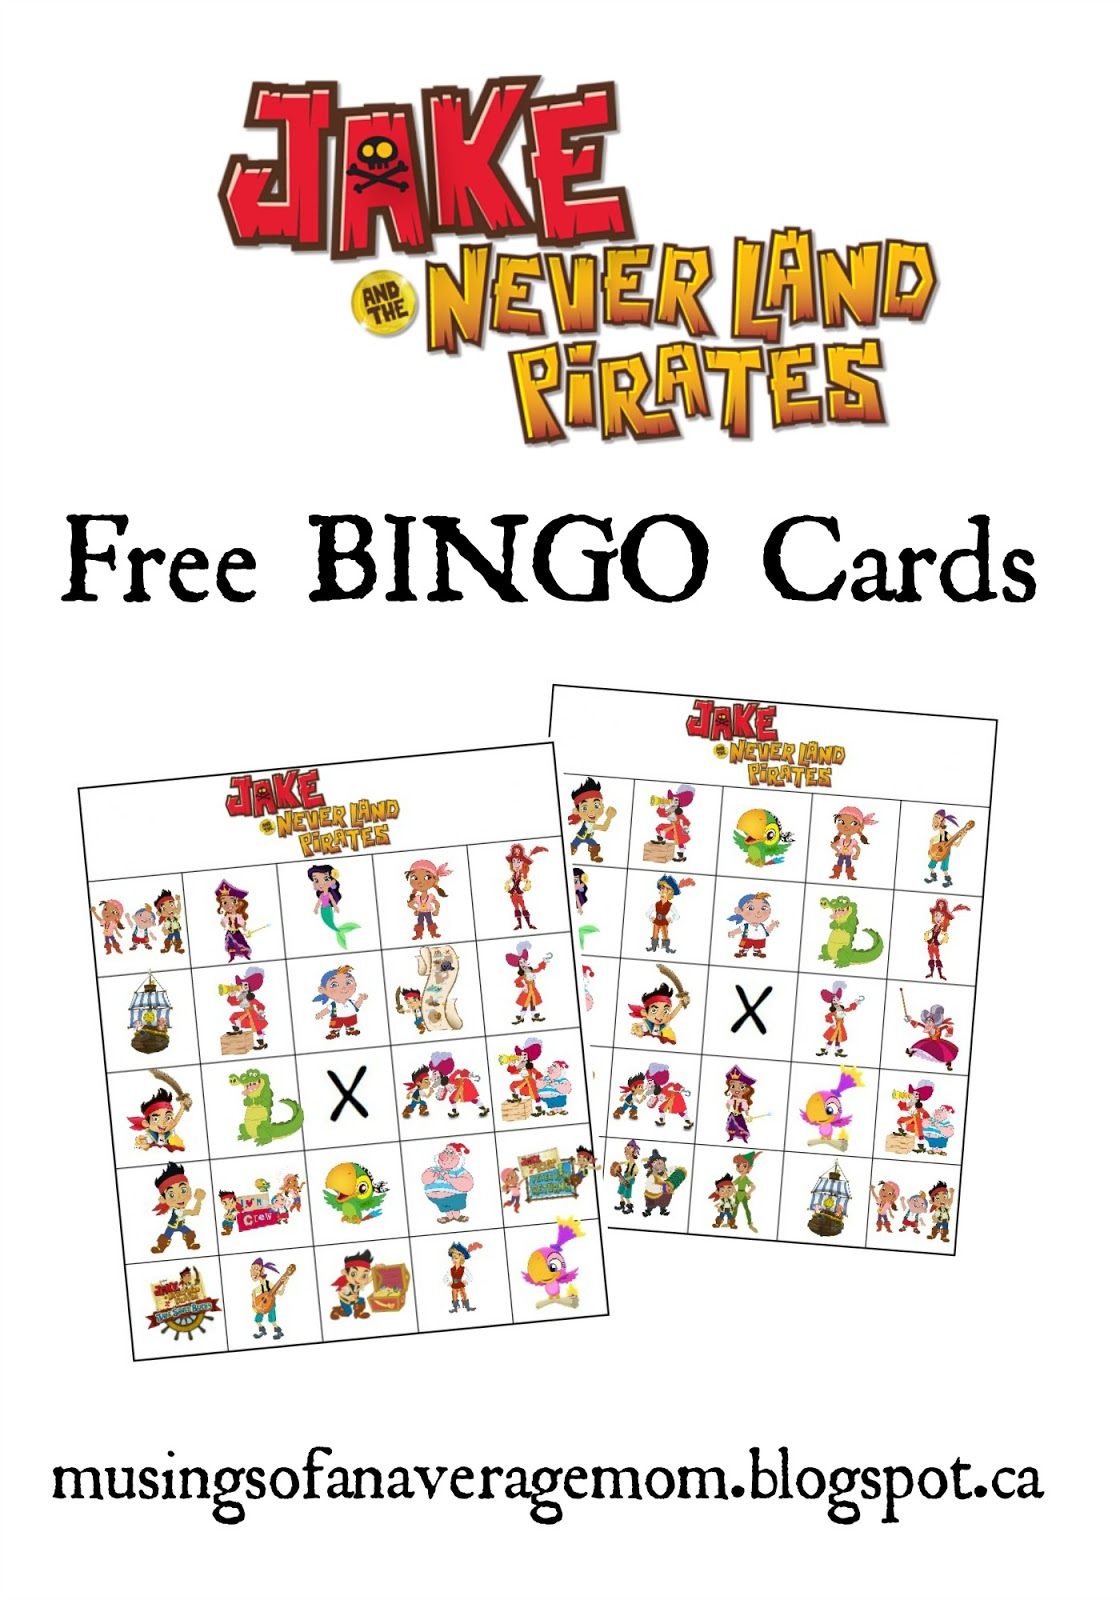 Musings of an Average Mom: Jake and the Neverland Pirates Bingo